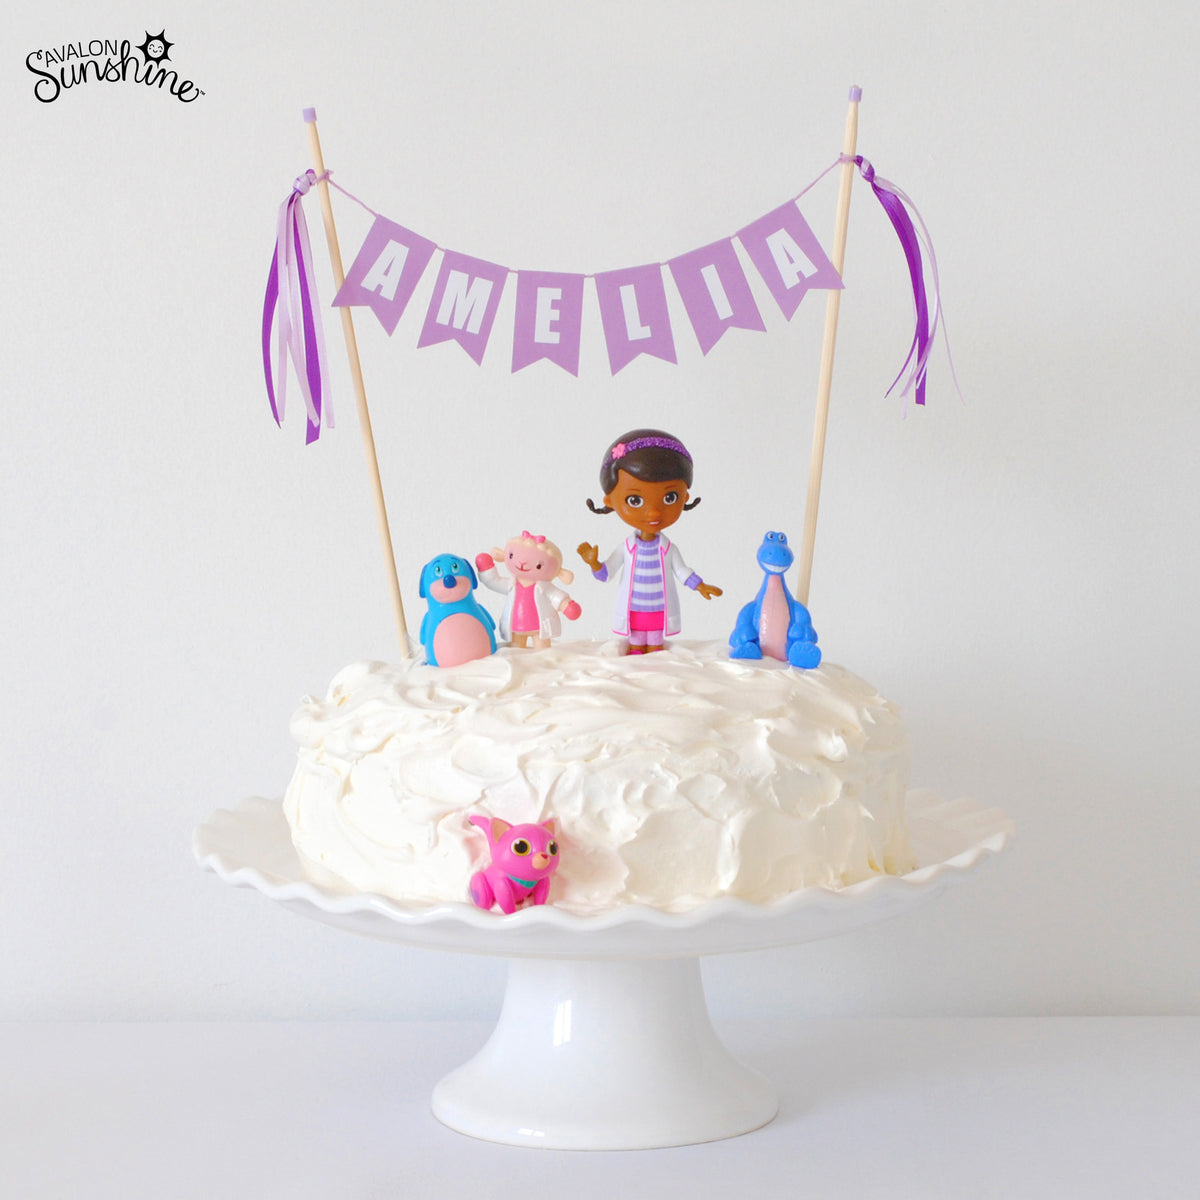 Awesome Toys On Cakes Doc Mcstuffins Avalon Sunshine Birthday Cards Printable Nowaargucafe Filternl